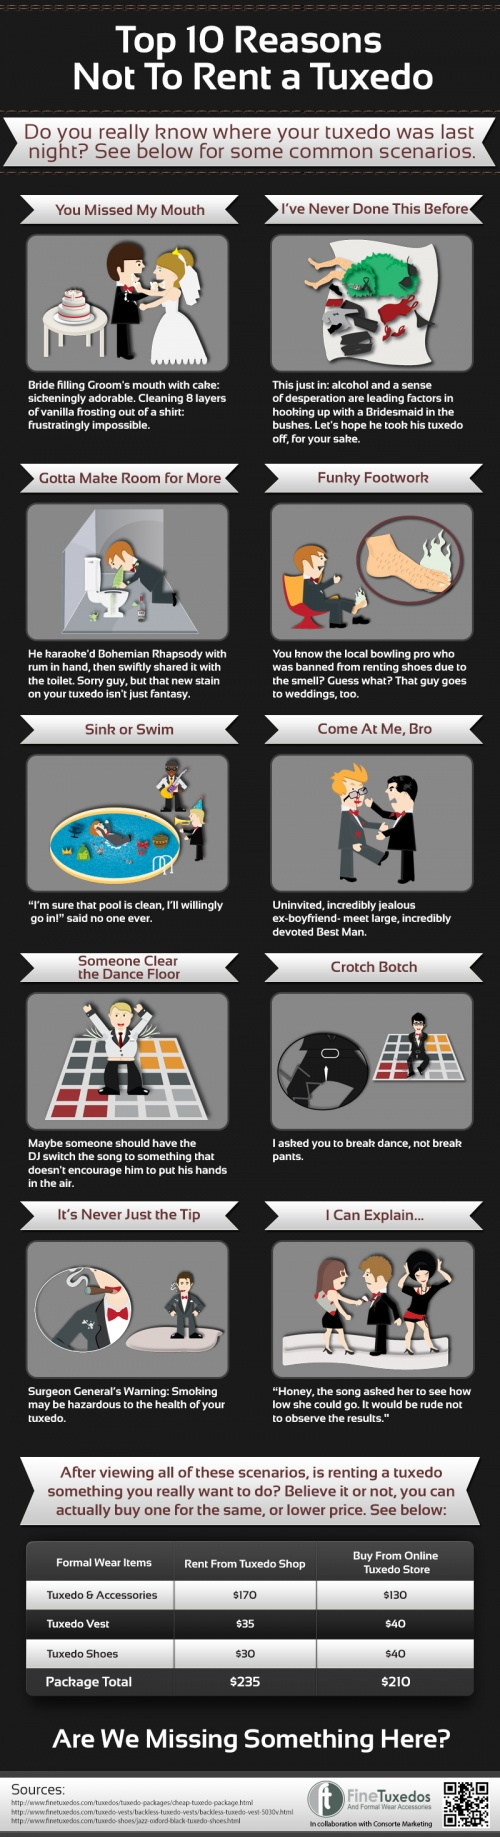 Top 10 Reasons Not To Rent a Tuxedo – Infographic on http://www.bestinfographic.co.uk